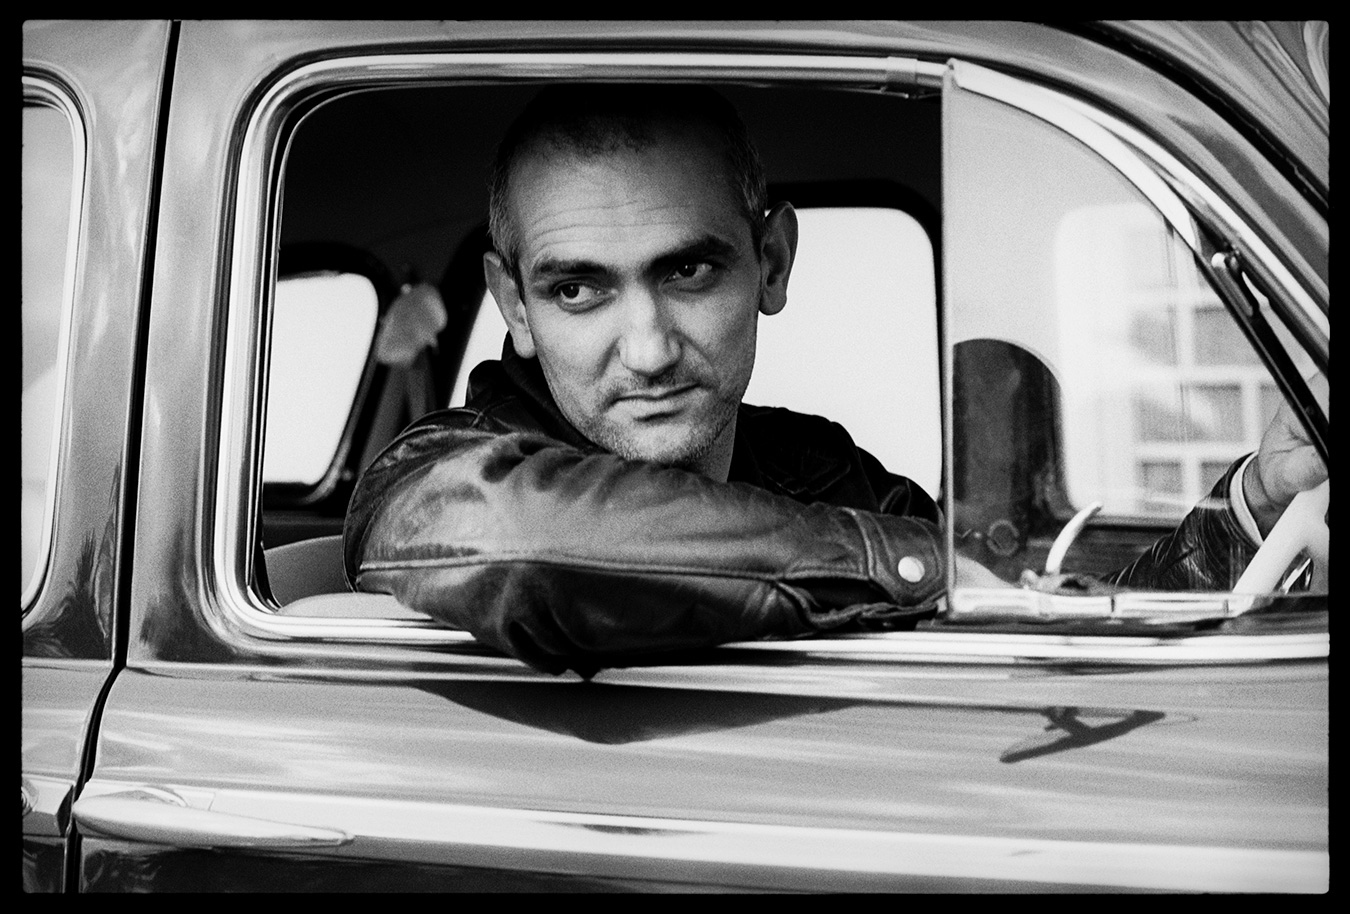 Paul Kelly 1996 by Wendy McDougall.